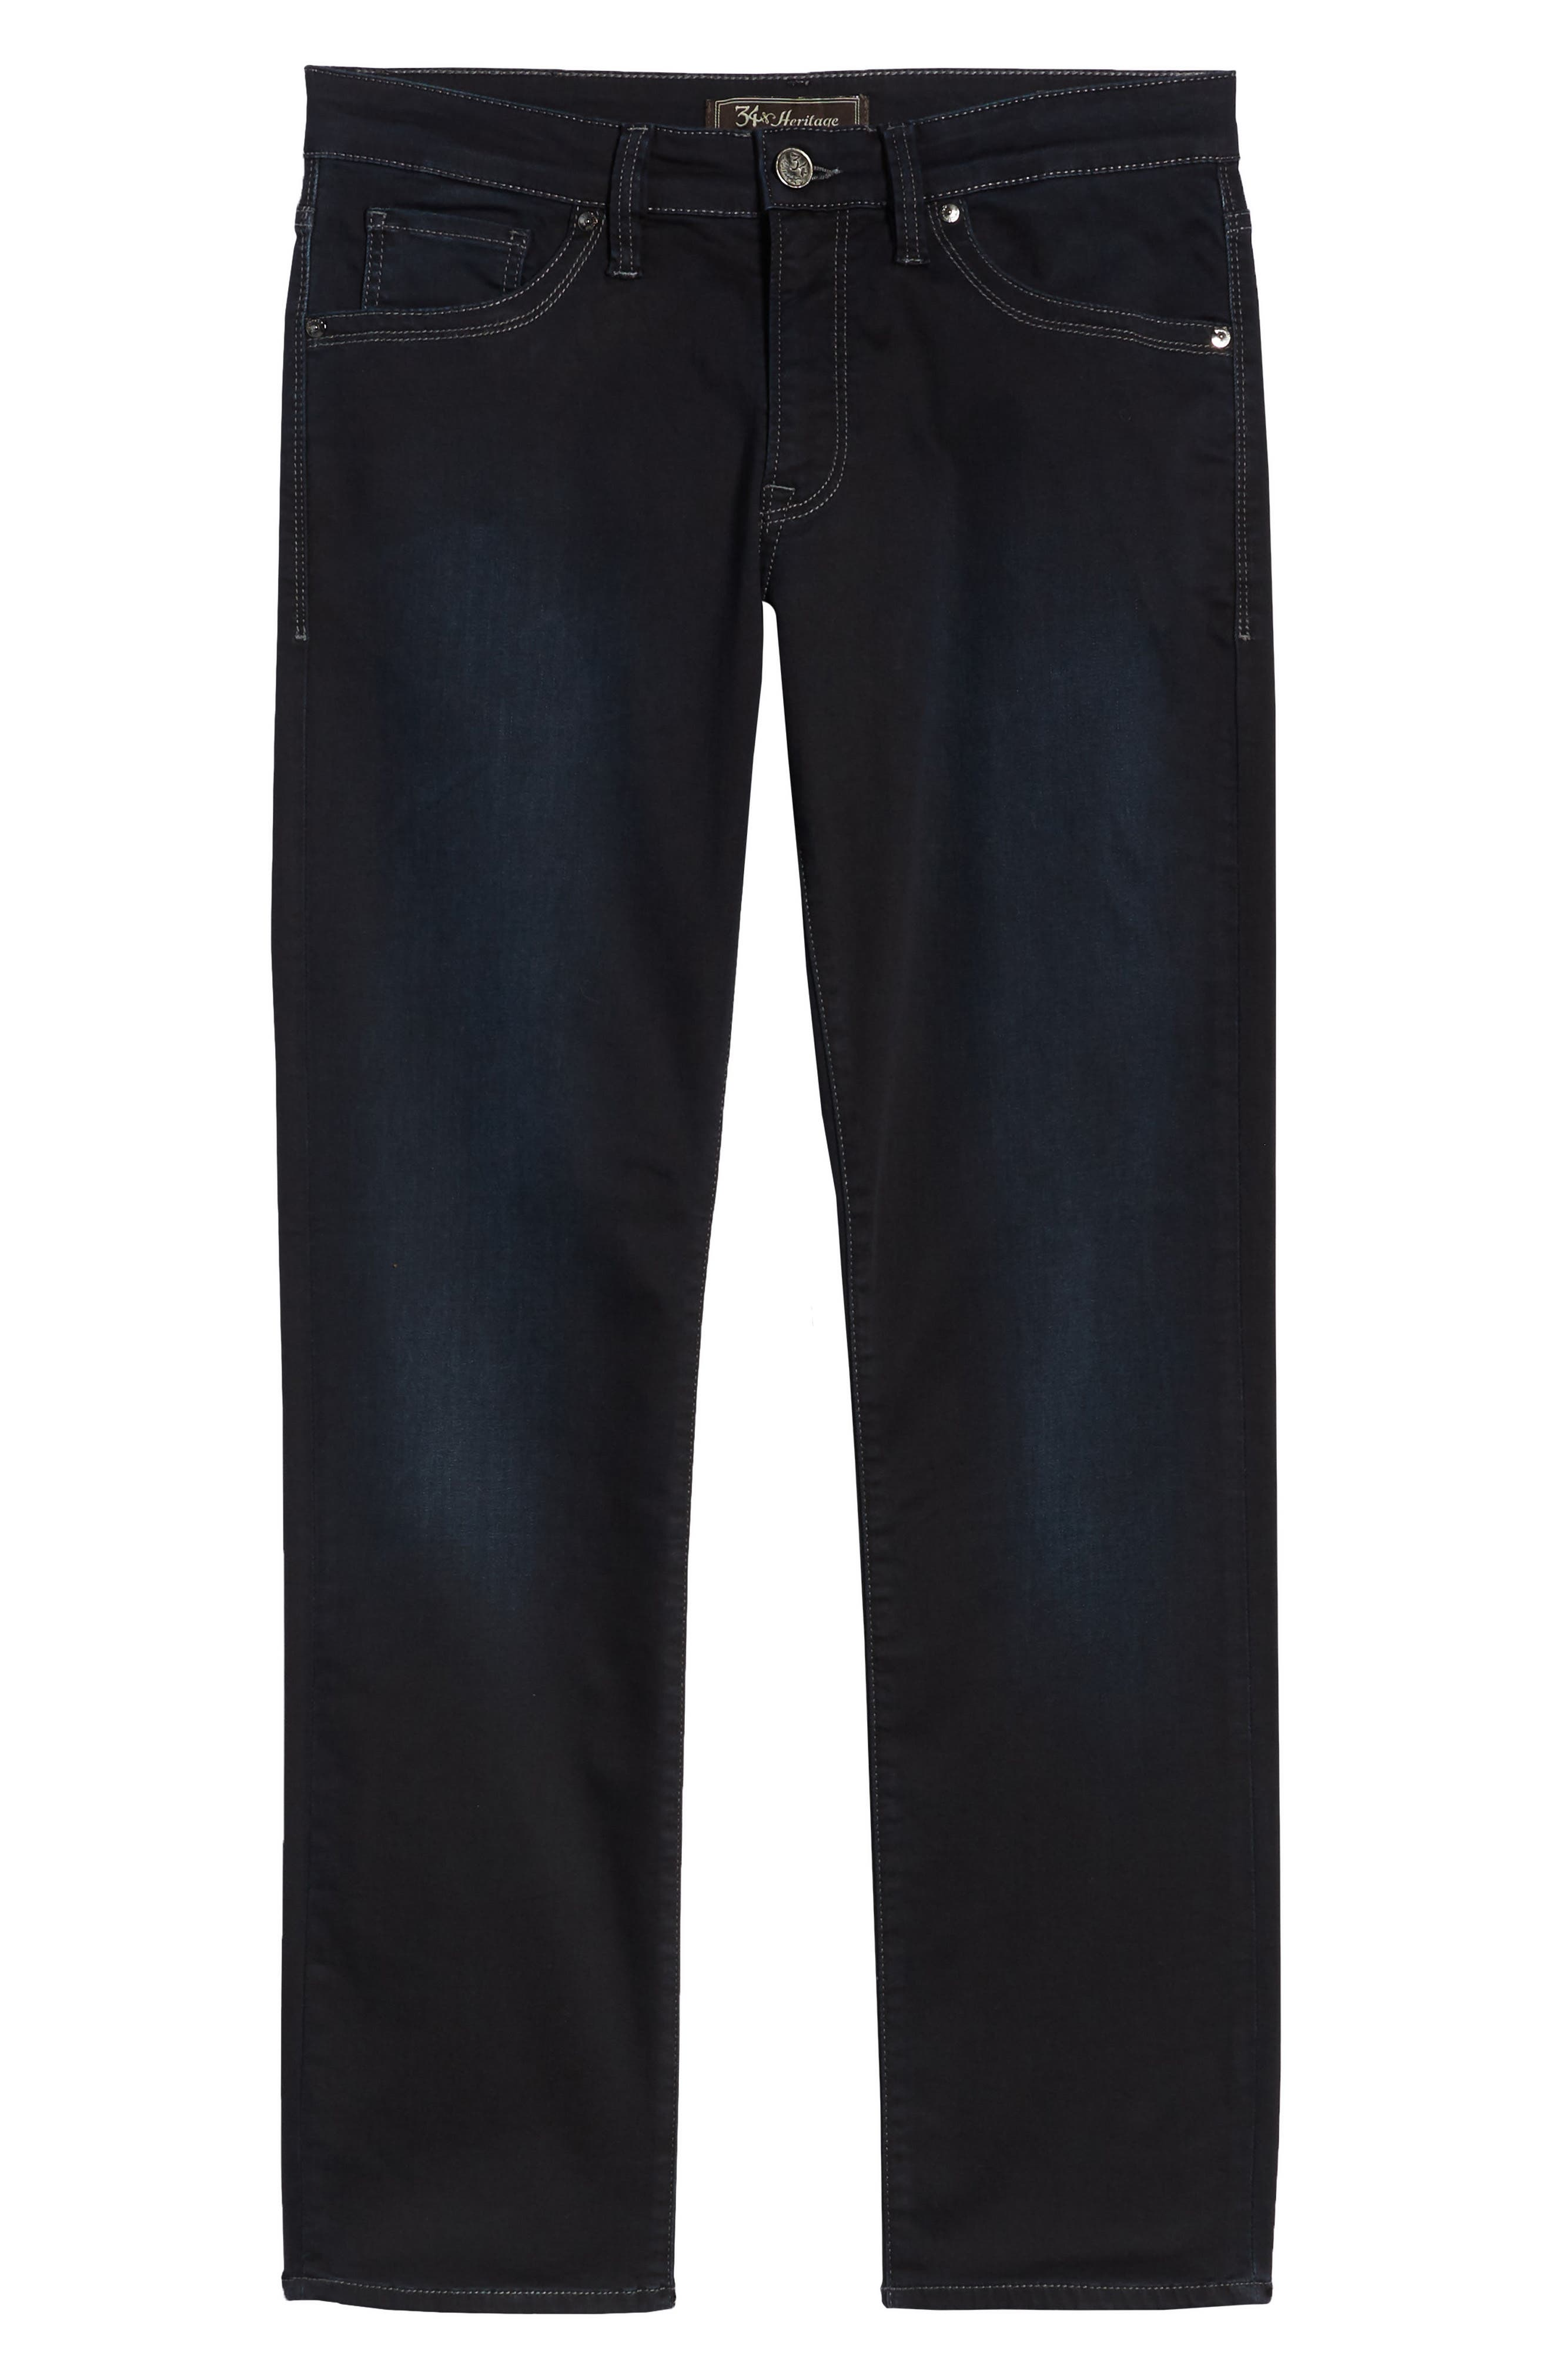 Courage Relaxed Fit Jeans,                             Alternate thumbnail 2, color,                             MIDNIGHT AUSTIN